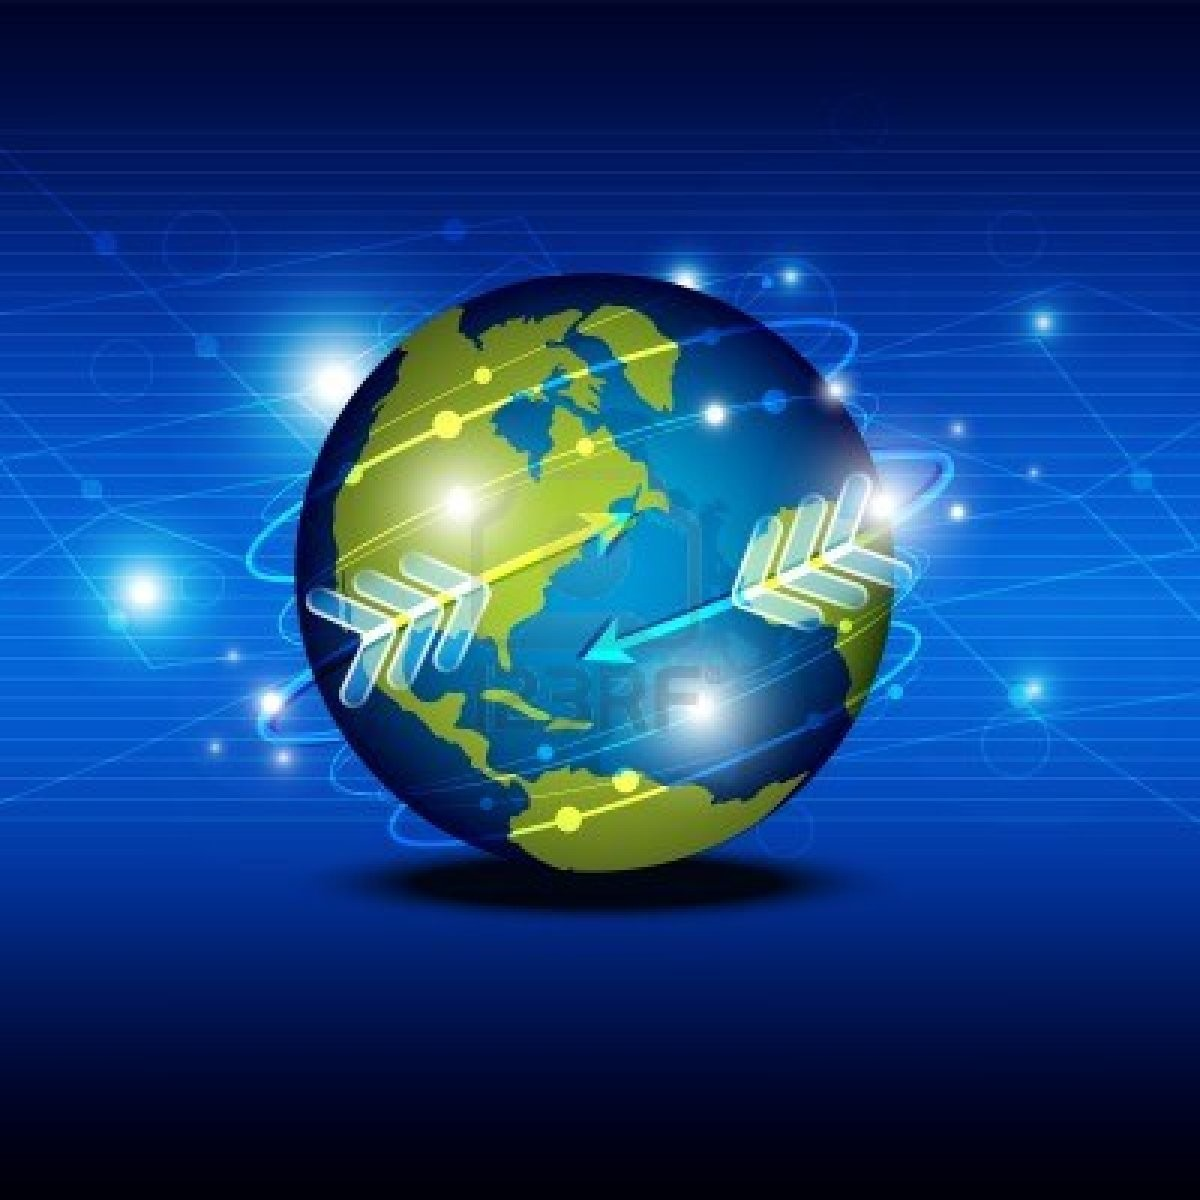 merits and demerits of globalization essay Globalizationadvantages & disadvantages disadvantages of globalizationspread of a materialistic lifestyle.